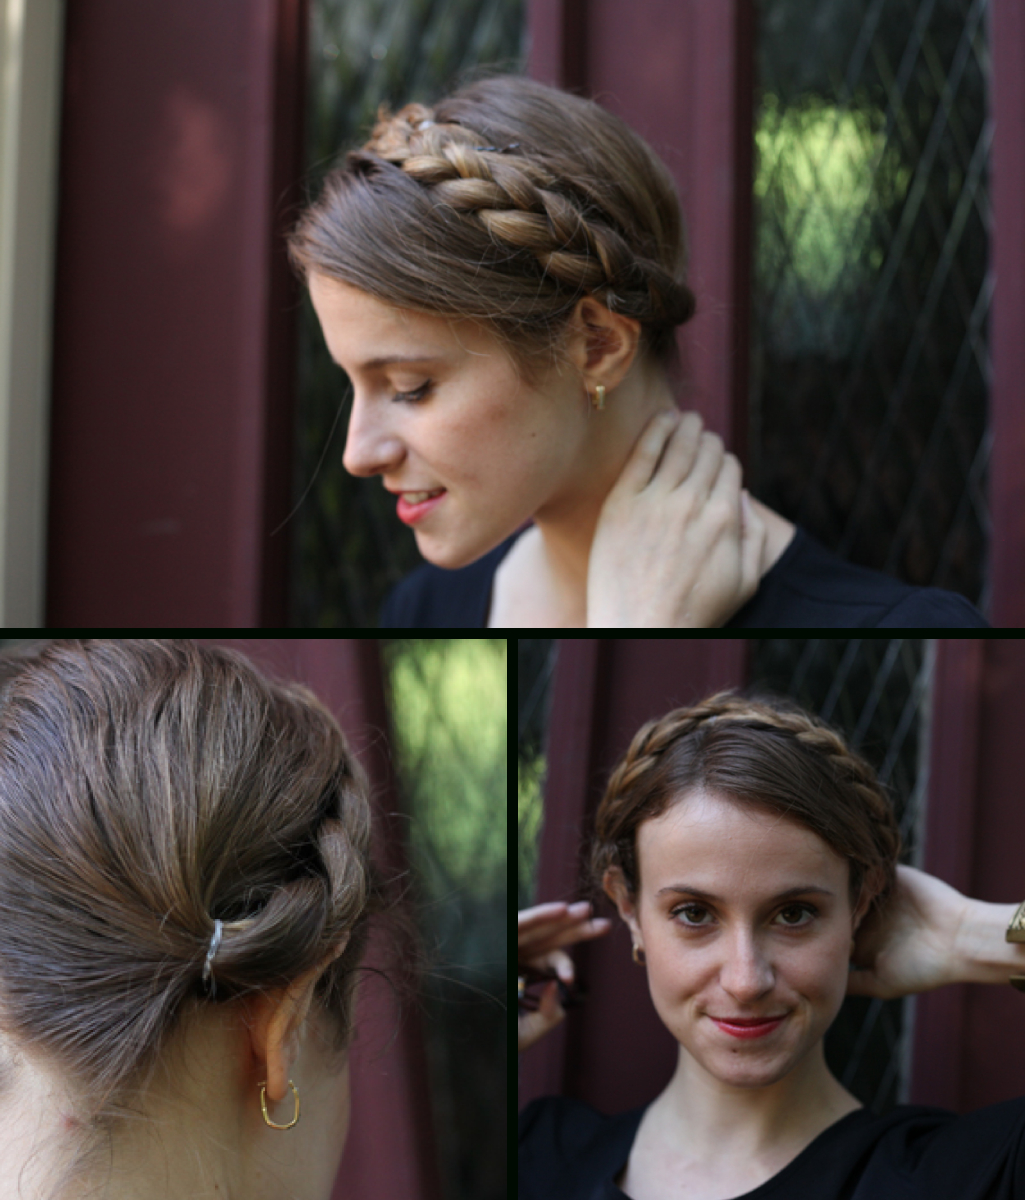 10 Quick And Easy Hairstyles For Updo Newbies – Verily With Well Known Simple Pony Updo Hairstyles With A Twist (Gallery 15 of 20)